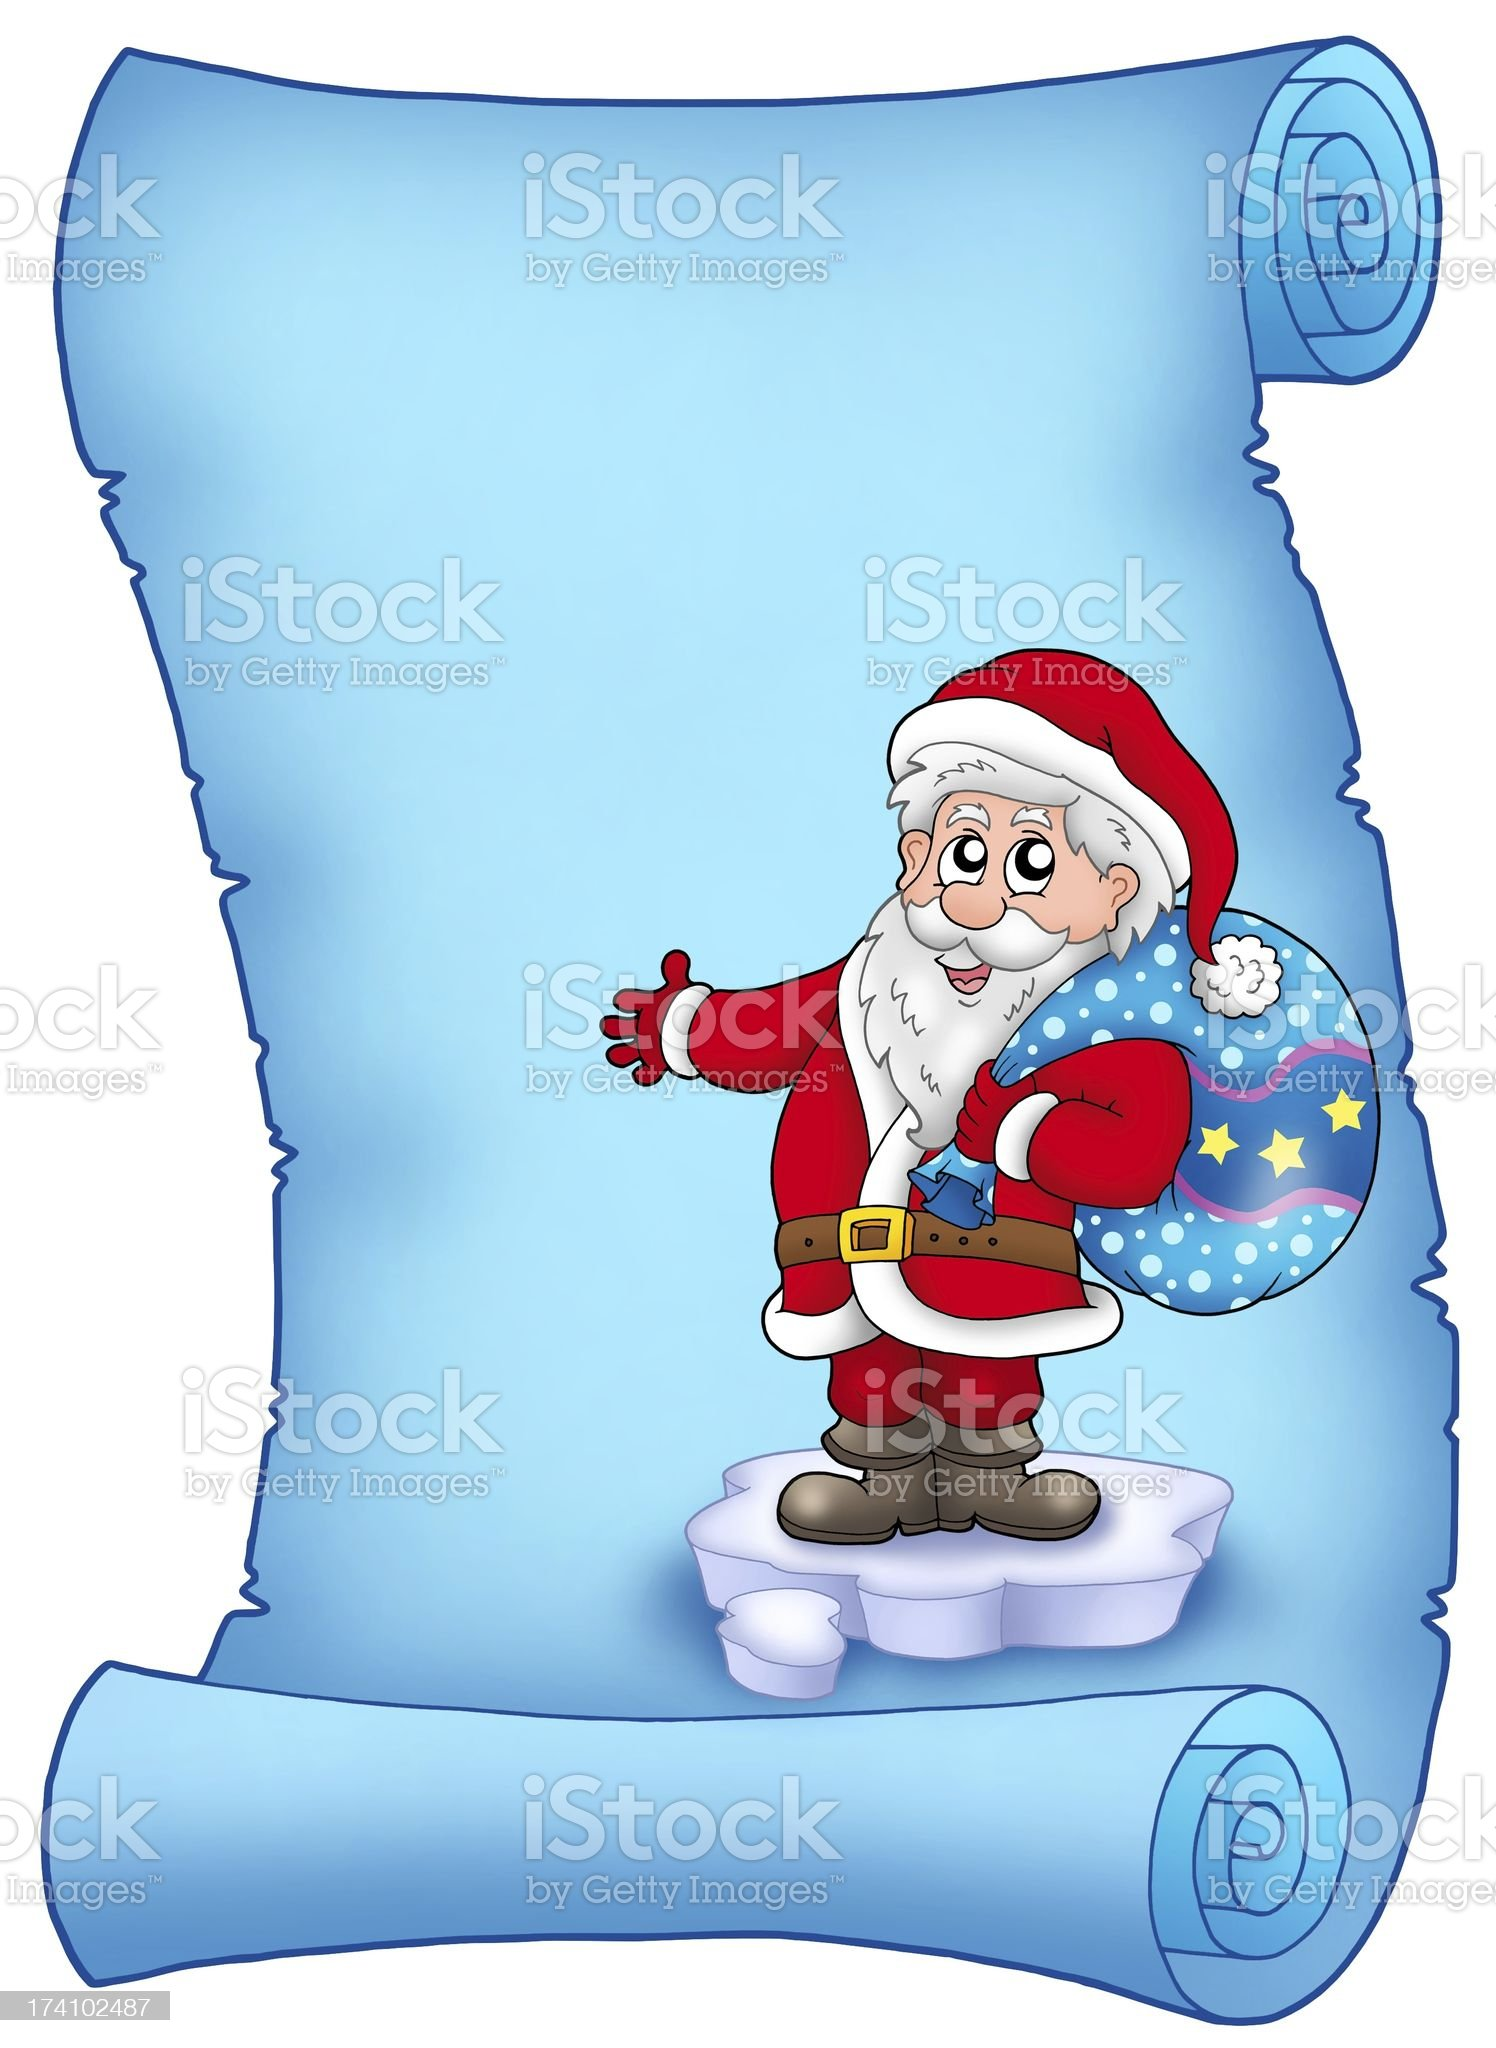 Blue parchment with Santa Claus 3 royalty-free stock vector art